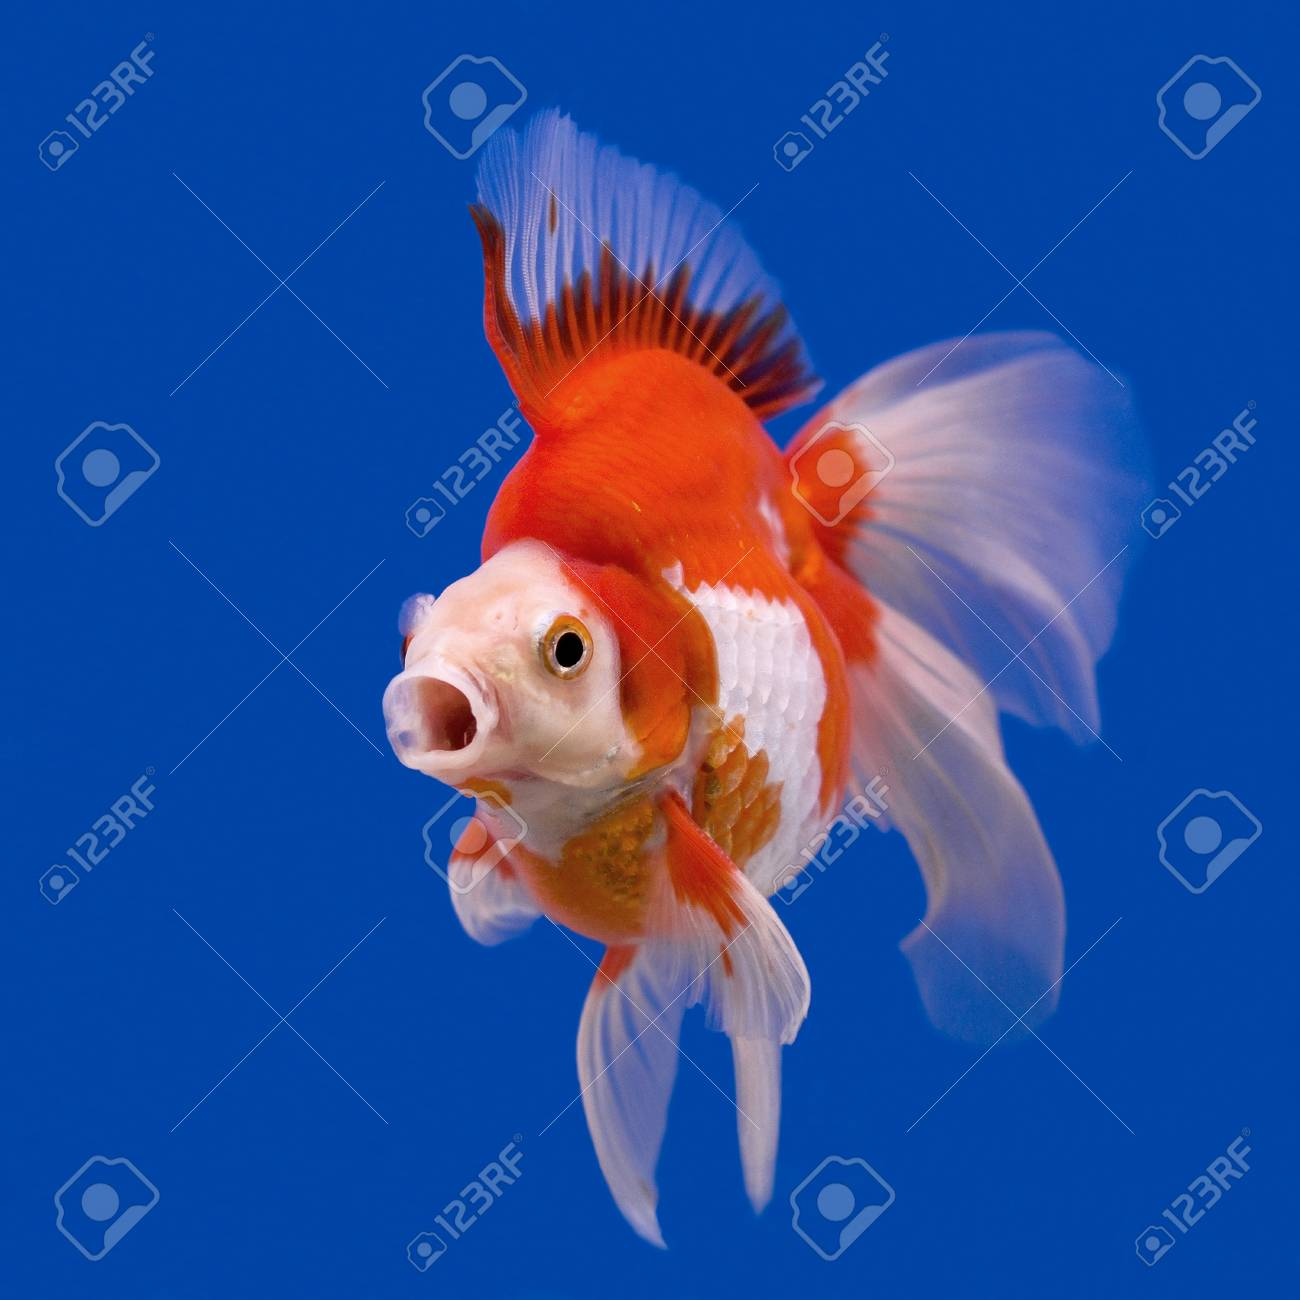 Beautiful Goldfish In The Aquarium Stock Photo Picture And Royalty Free Image Image 36960633